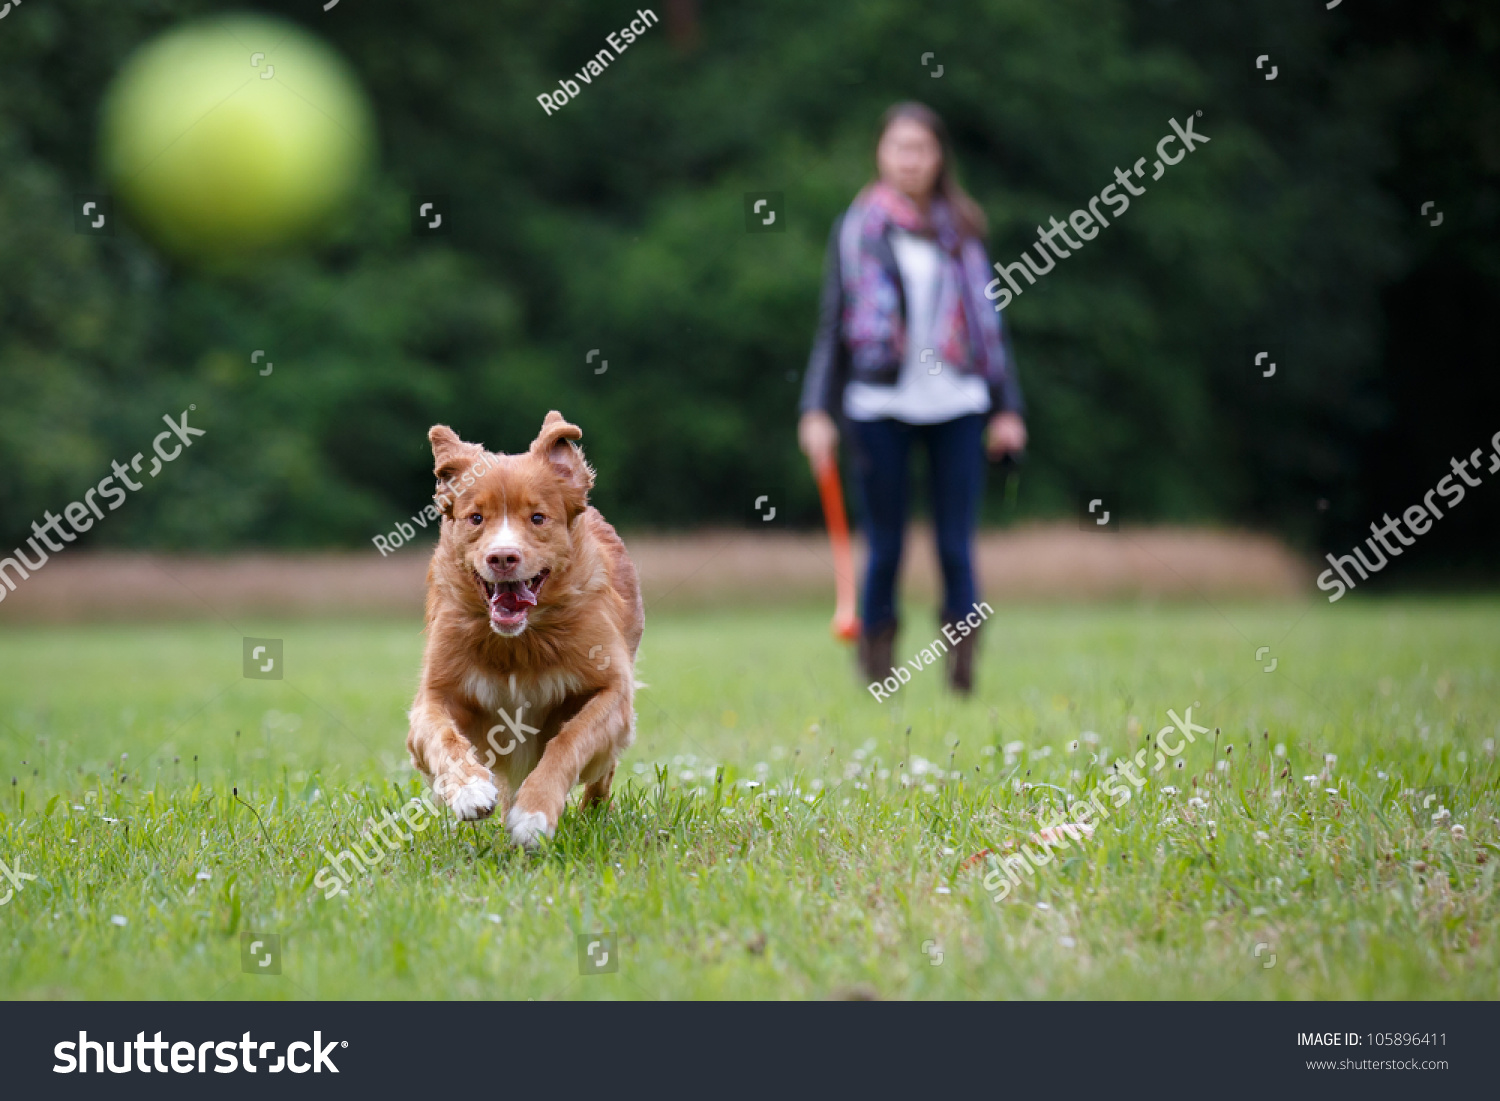 Retriever dog running fast to catch a yellow tennis ball, on a field with green grass in the forest #105896411